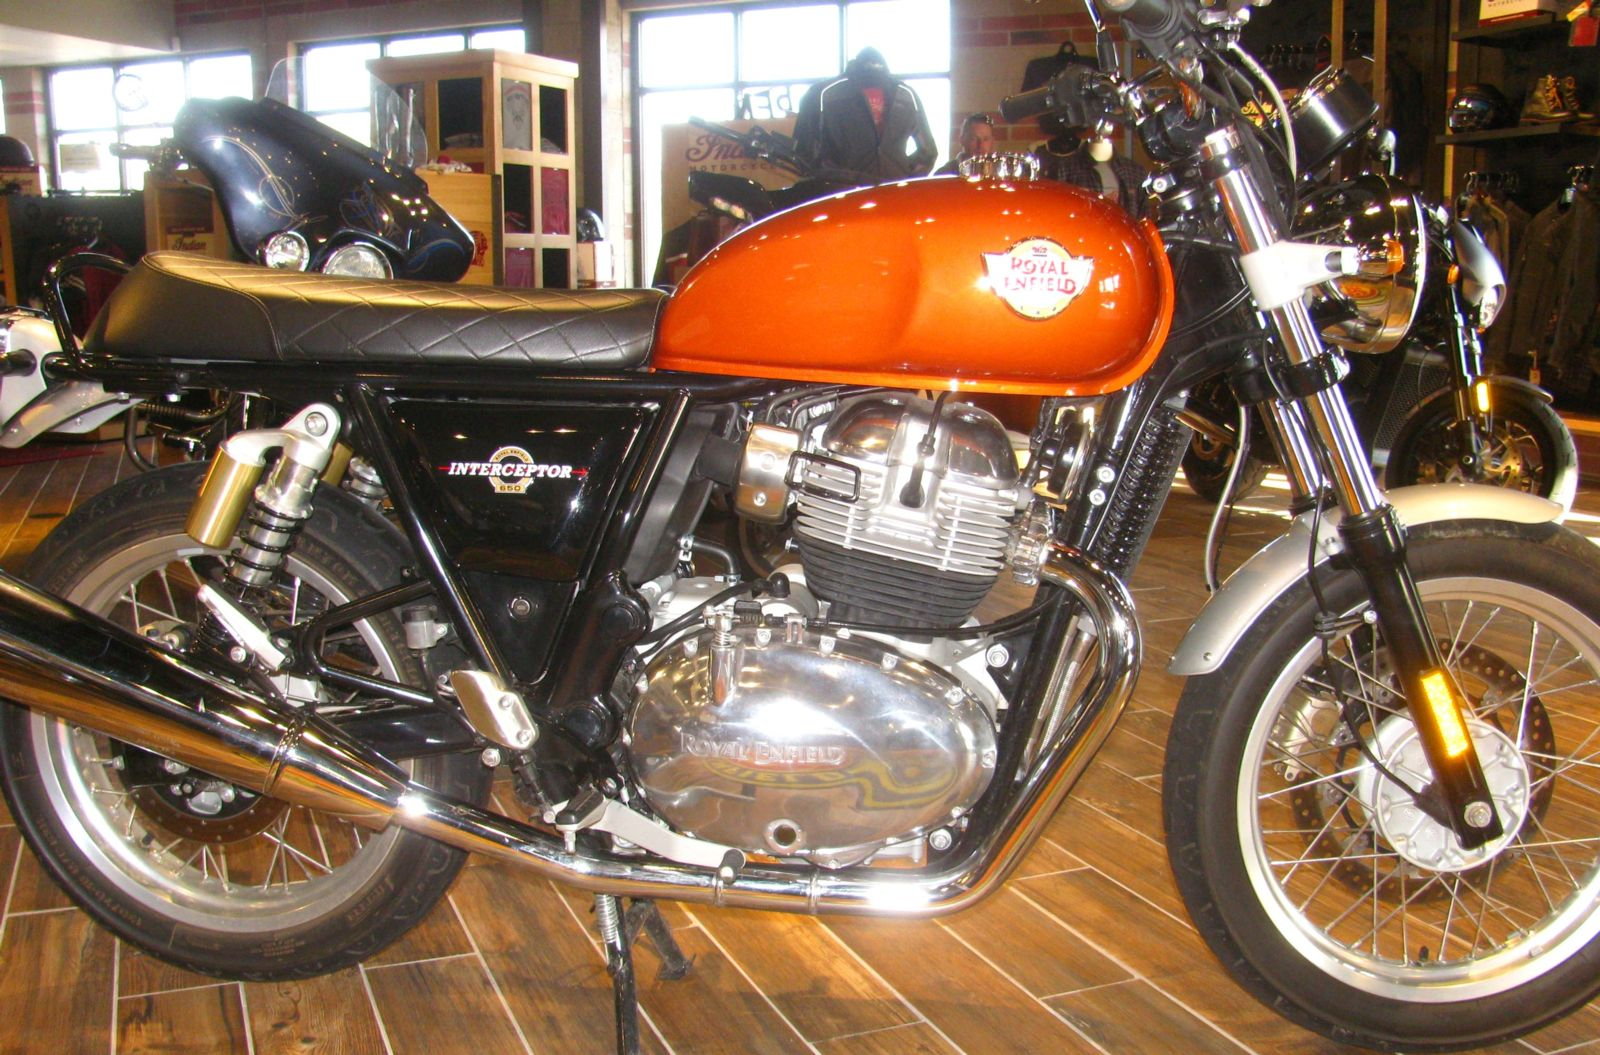 Interceptor 650 with Orange Crush paint